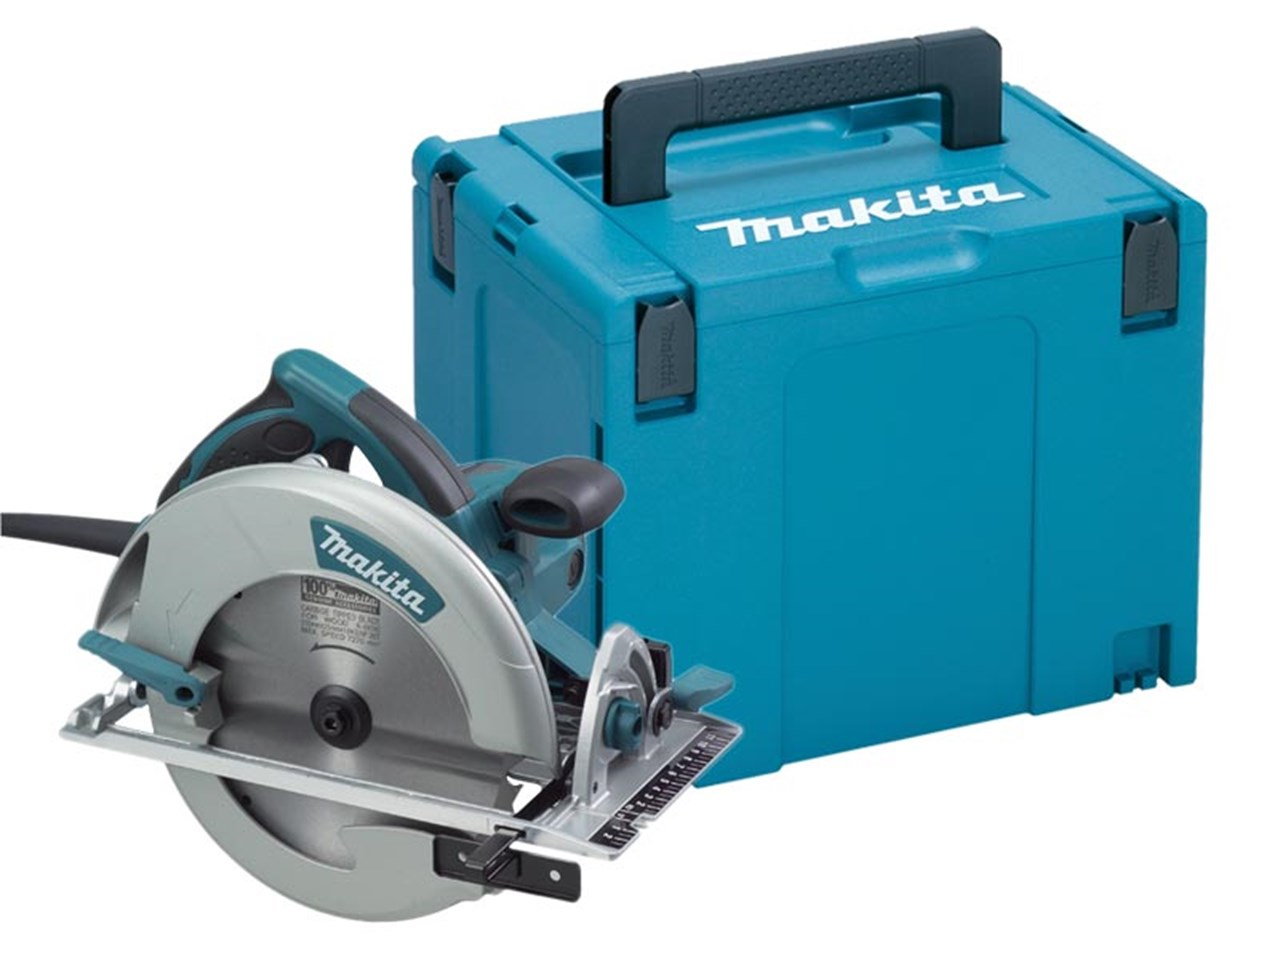 "Makita 5008MGAJ 110V 210mm Circular Saw - Cutting Depth of 75.5mm (3"")"